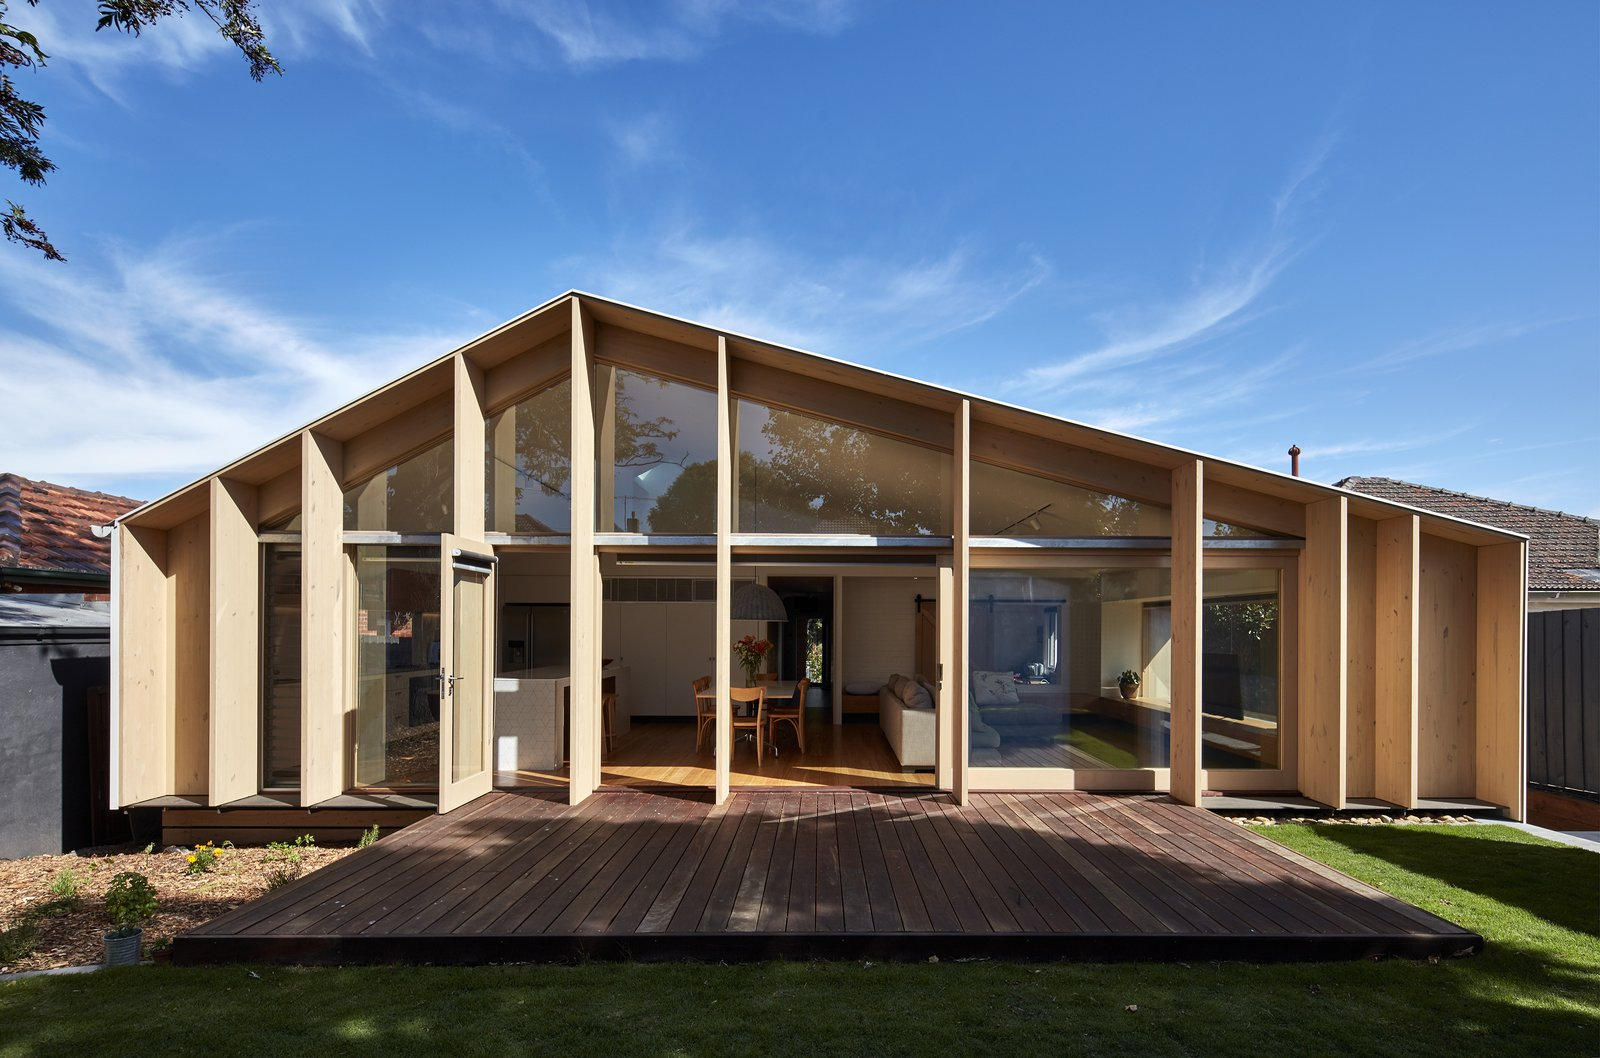 Exterior, Glass Siding Material, Wood Siding Material, House Building Type, and Saltbox RoofLine  Photos from A Contemporary Extension Gives This Australian Home a New Face